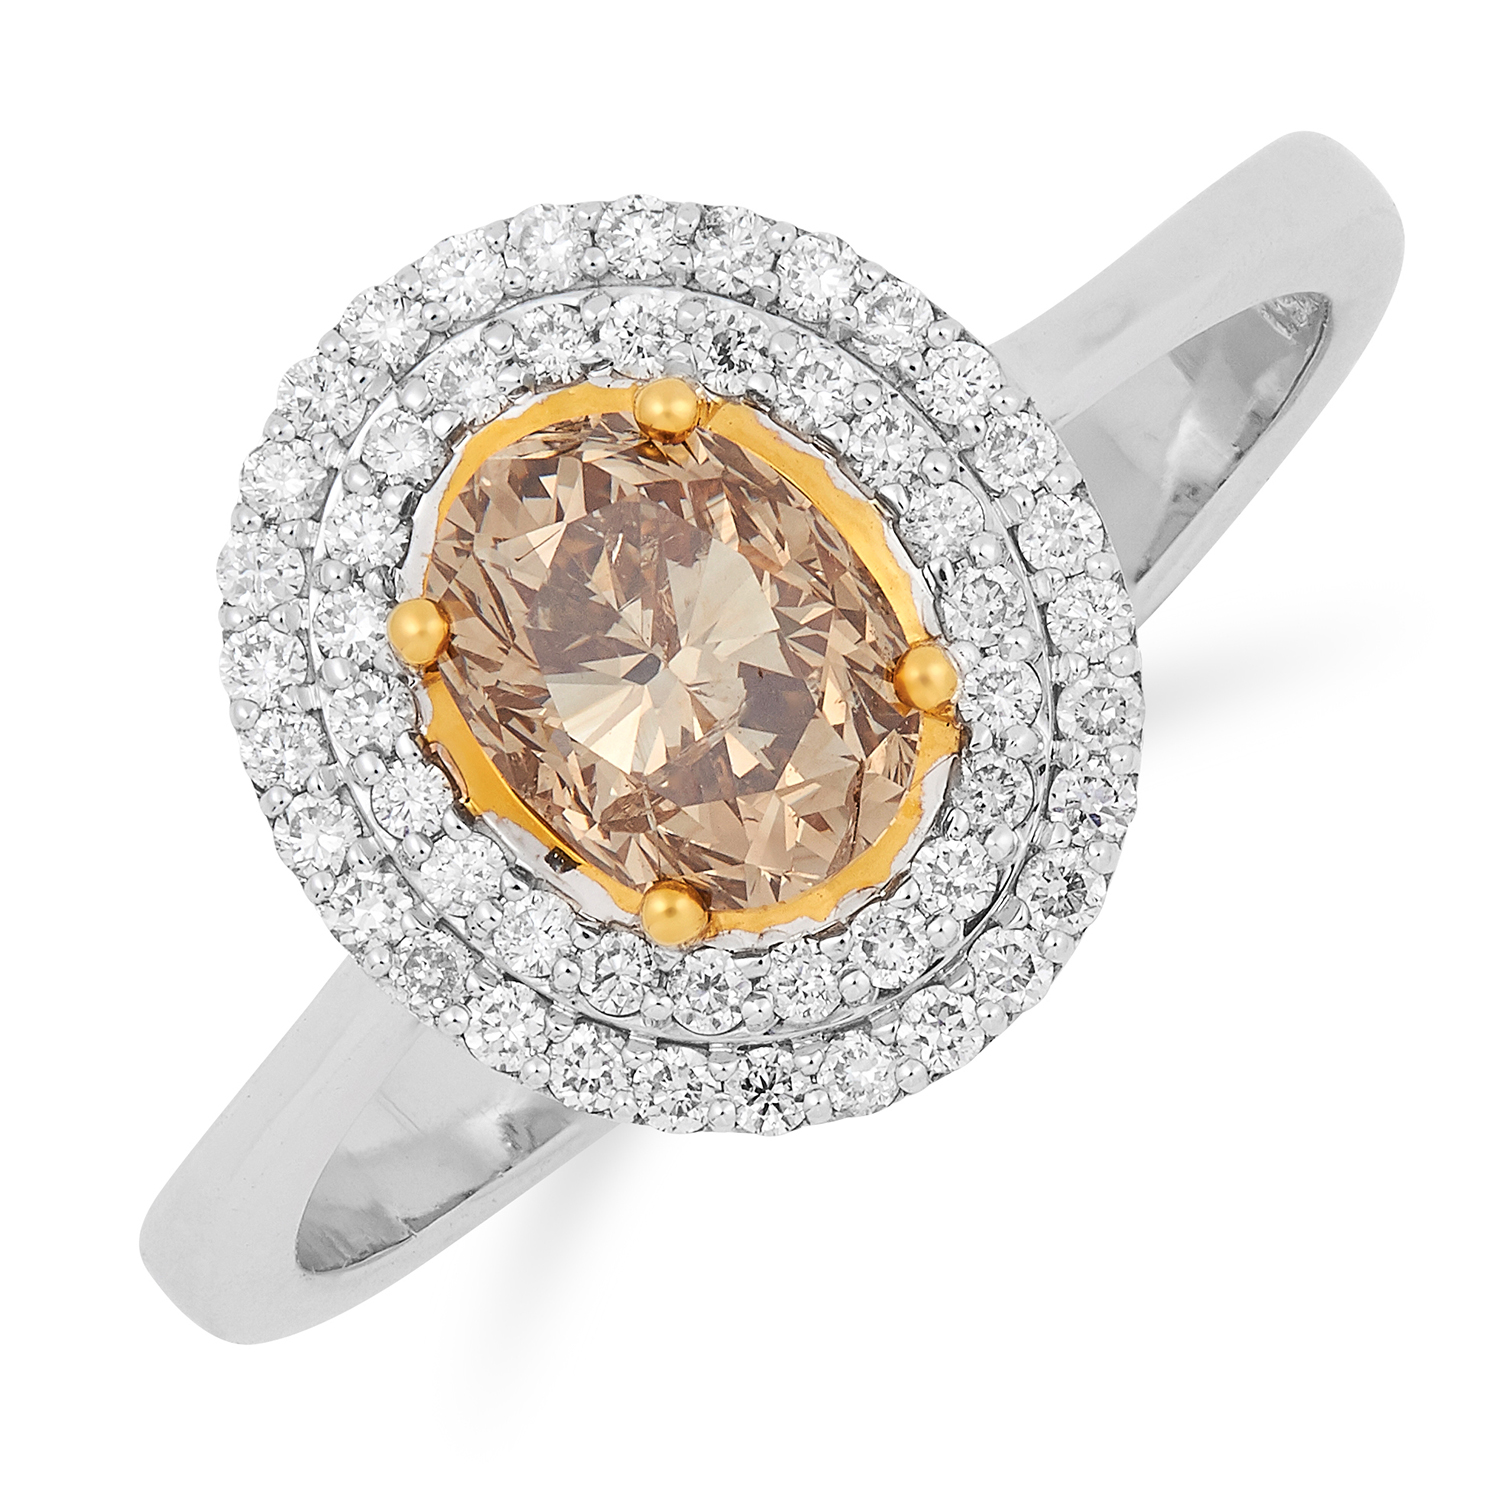 Los 58 - CHAMPAGNE DIAMOND CLUSTER RING set with an oval cut champagne diamond of approximately 1.00 carats